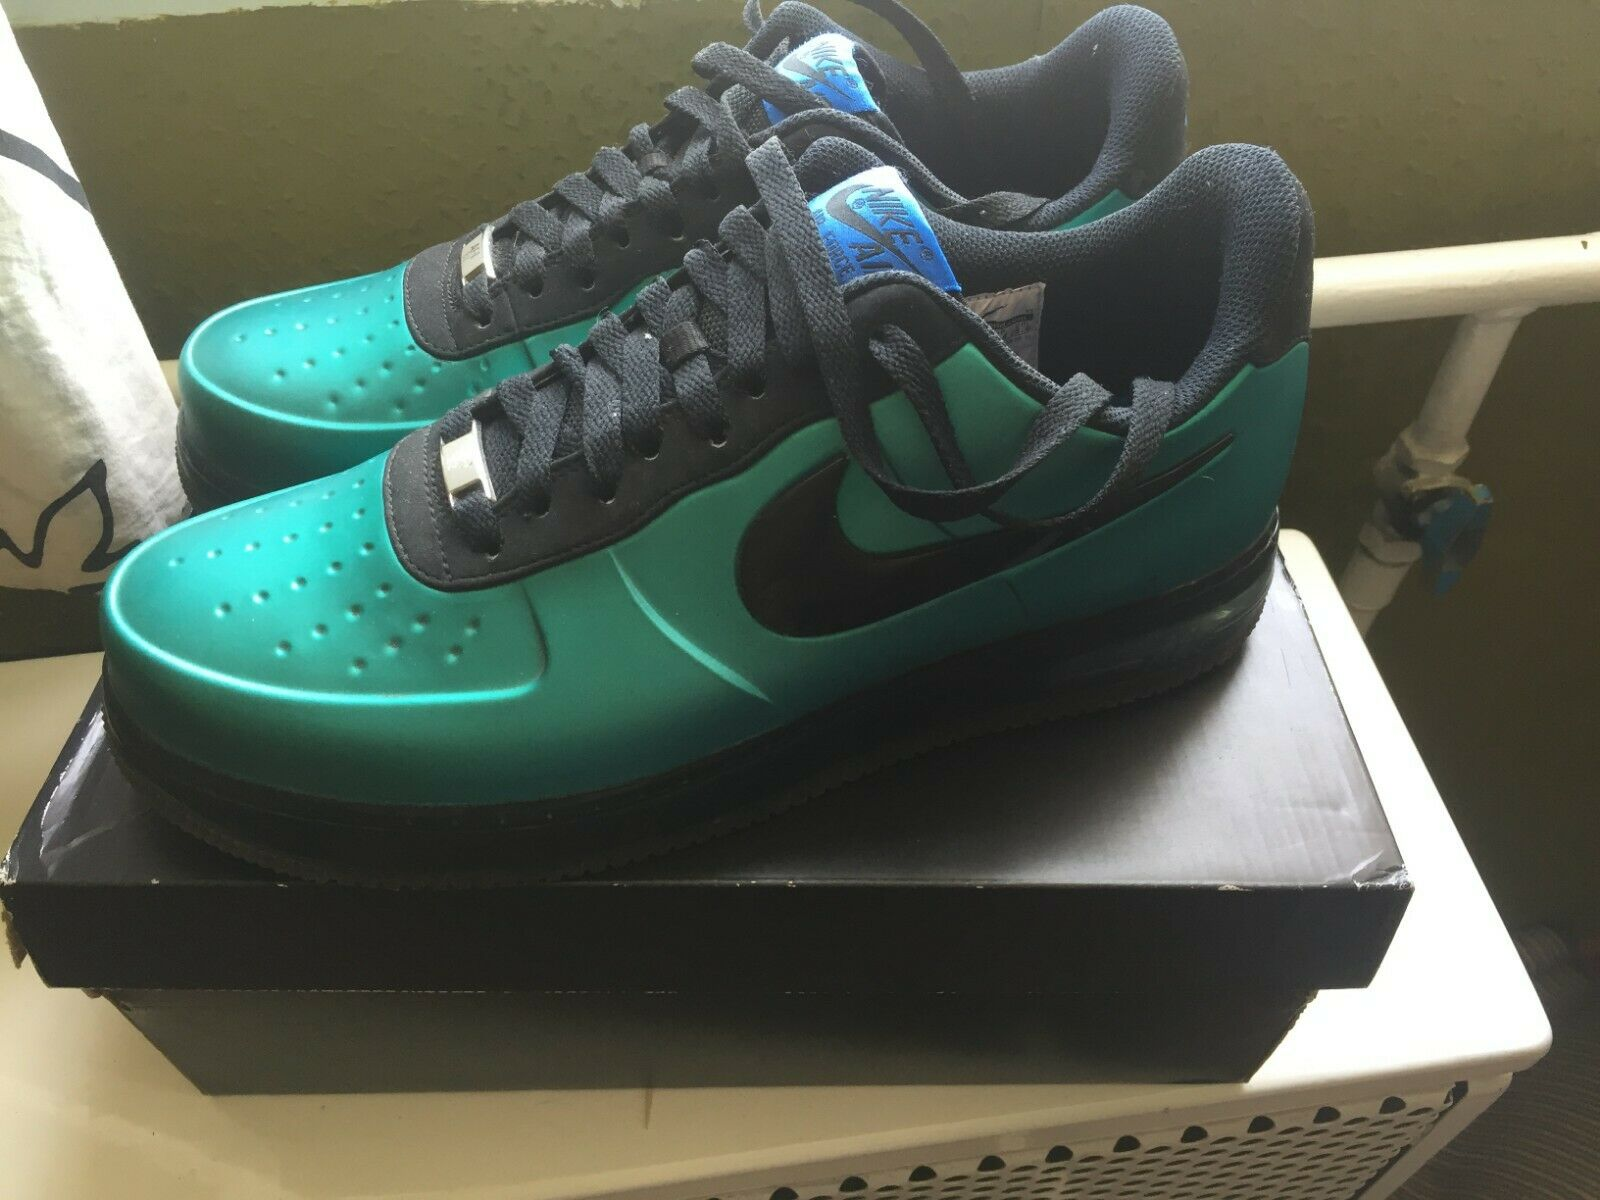 NIKE AIR FORCE 1 FOAMPOSITE PRO LOW   NEW GREEN  10.5 US 9.5UK